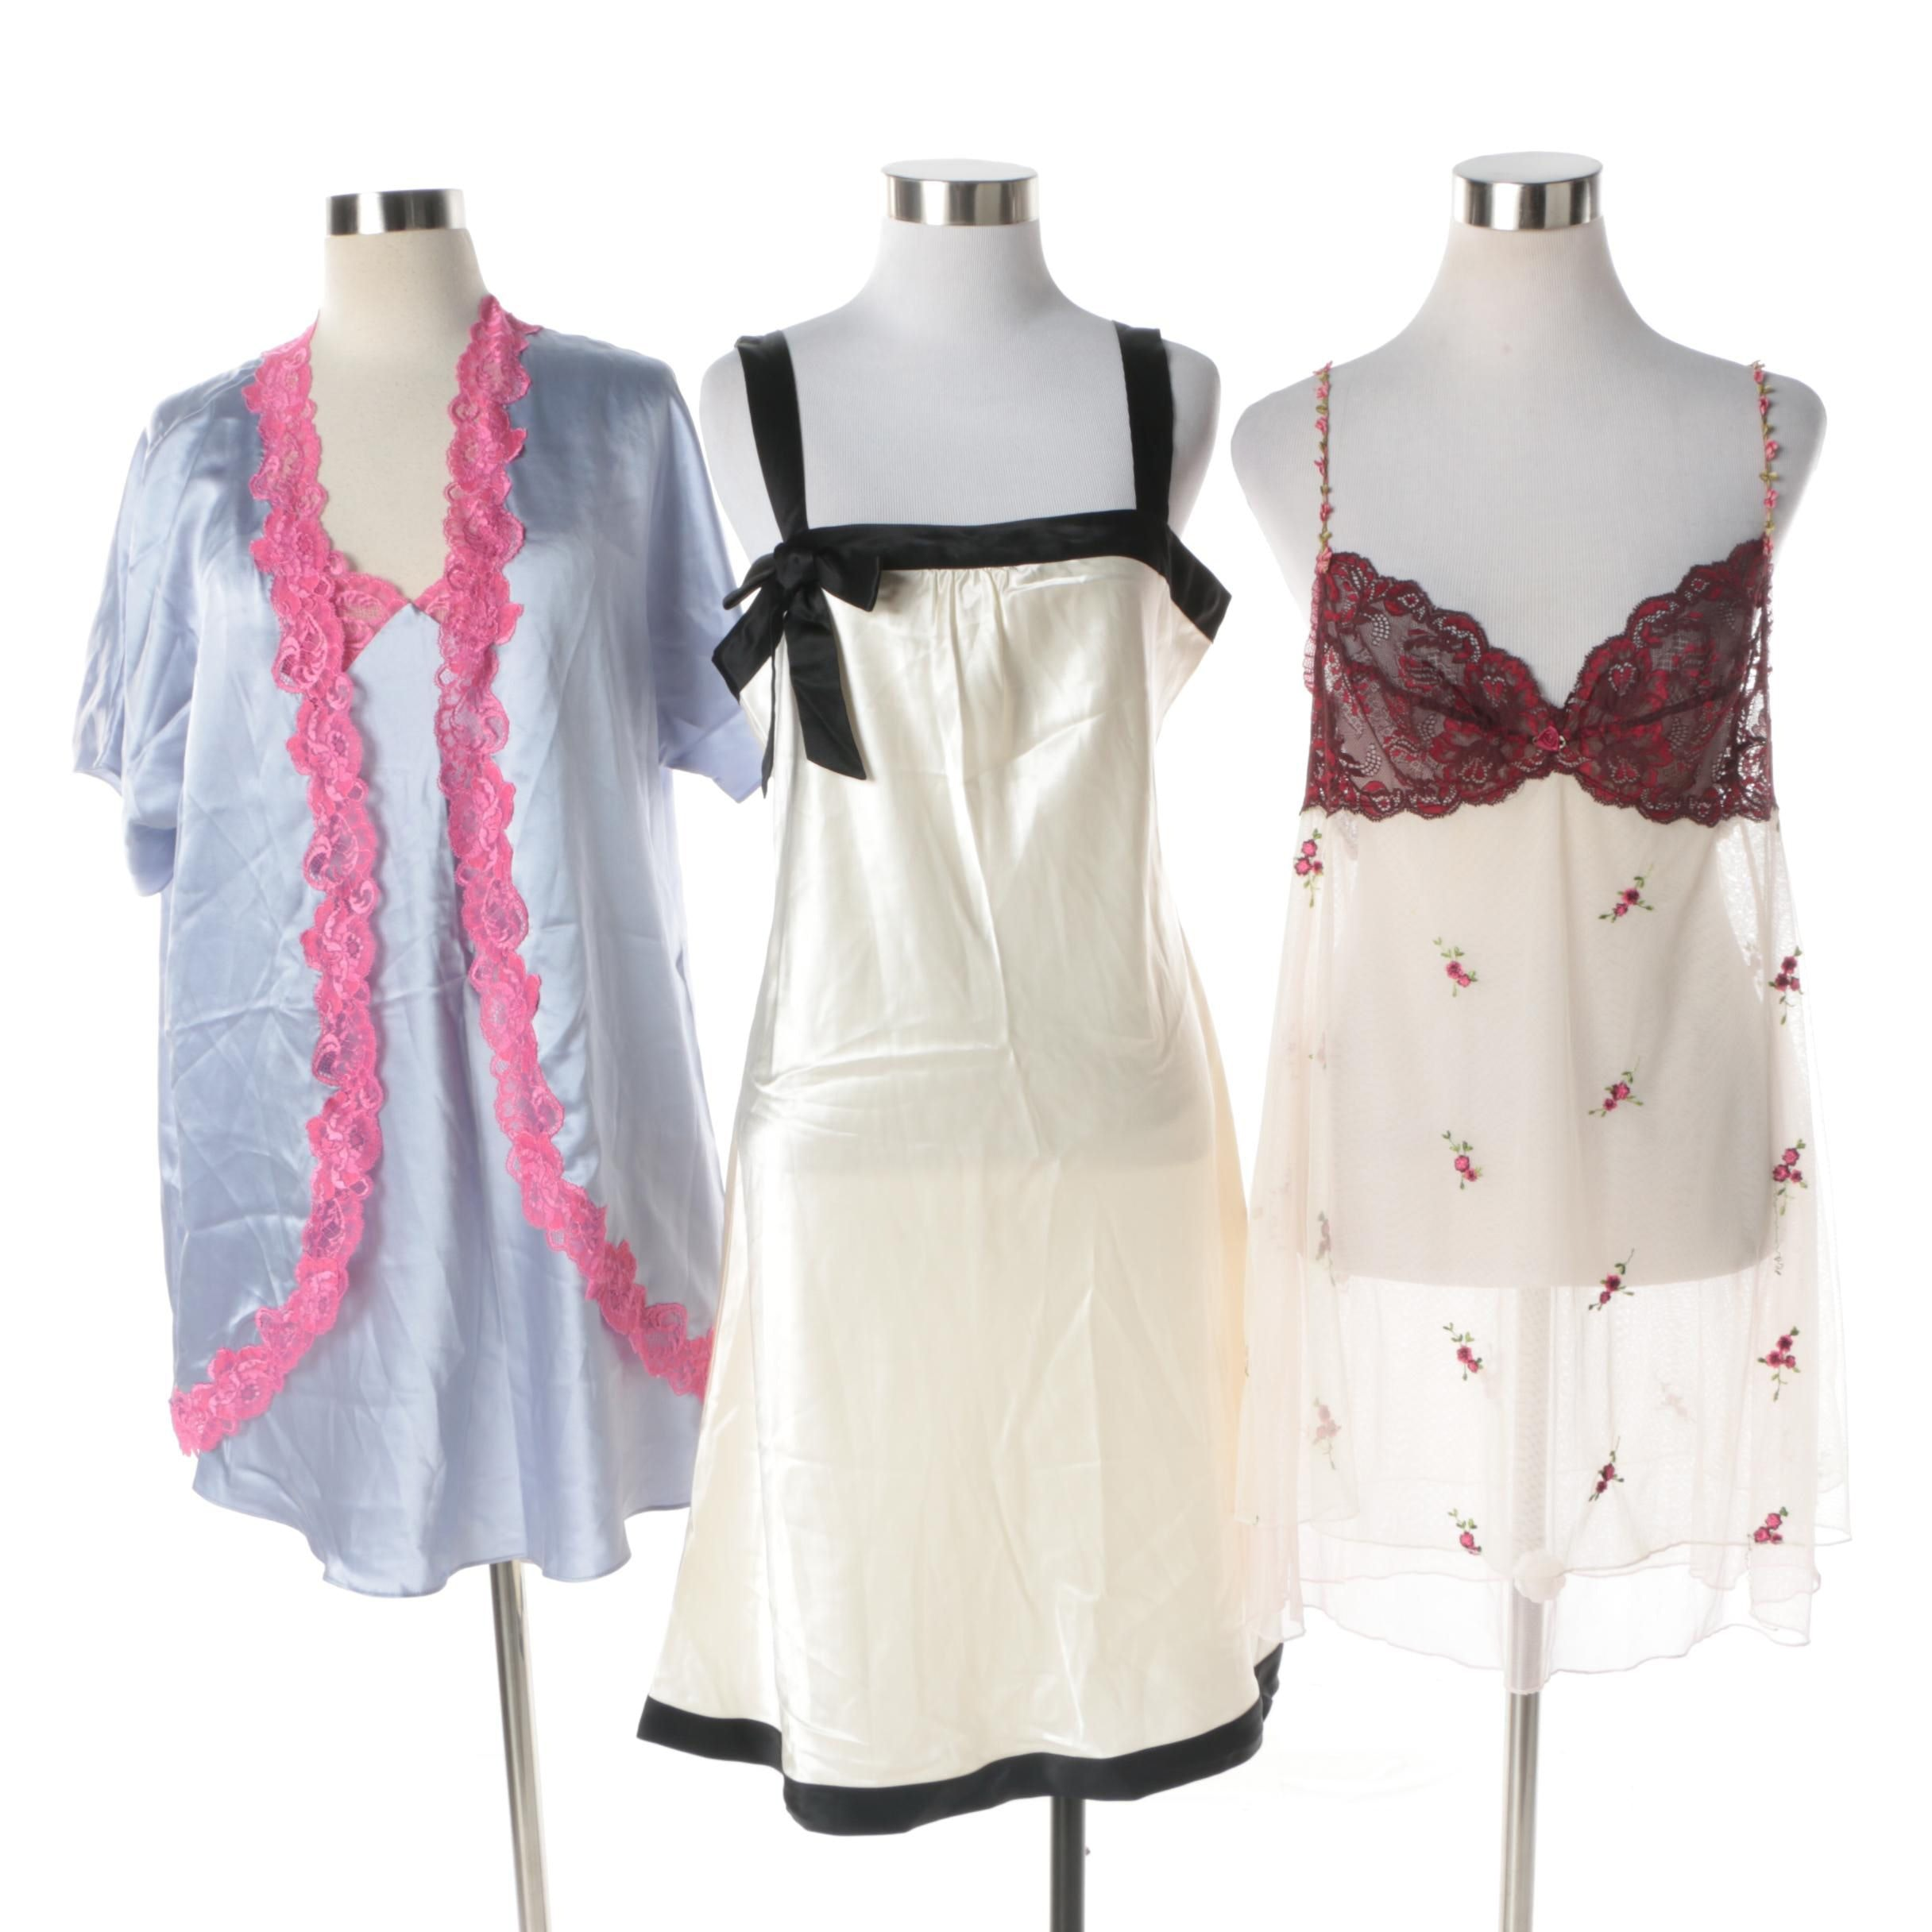 Women's Silk Sleepwear Including Vera Wang